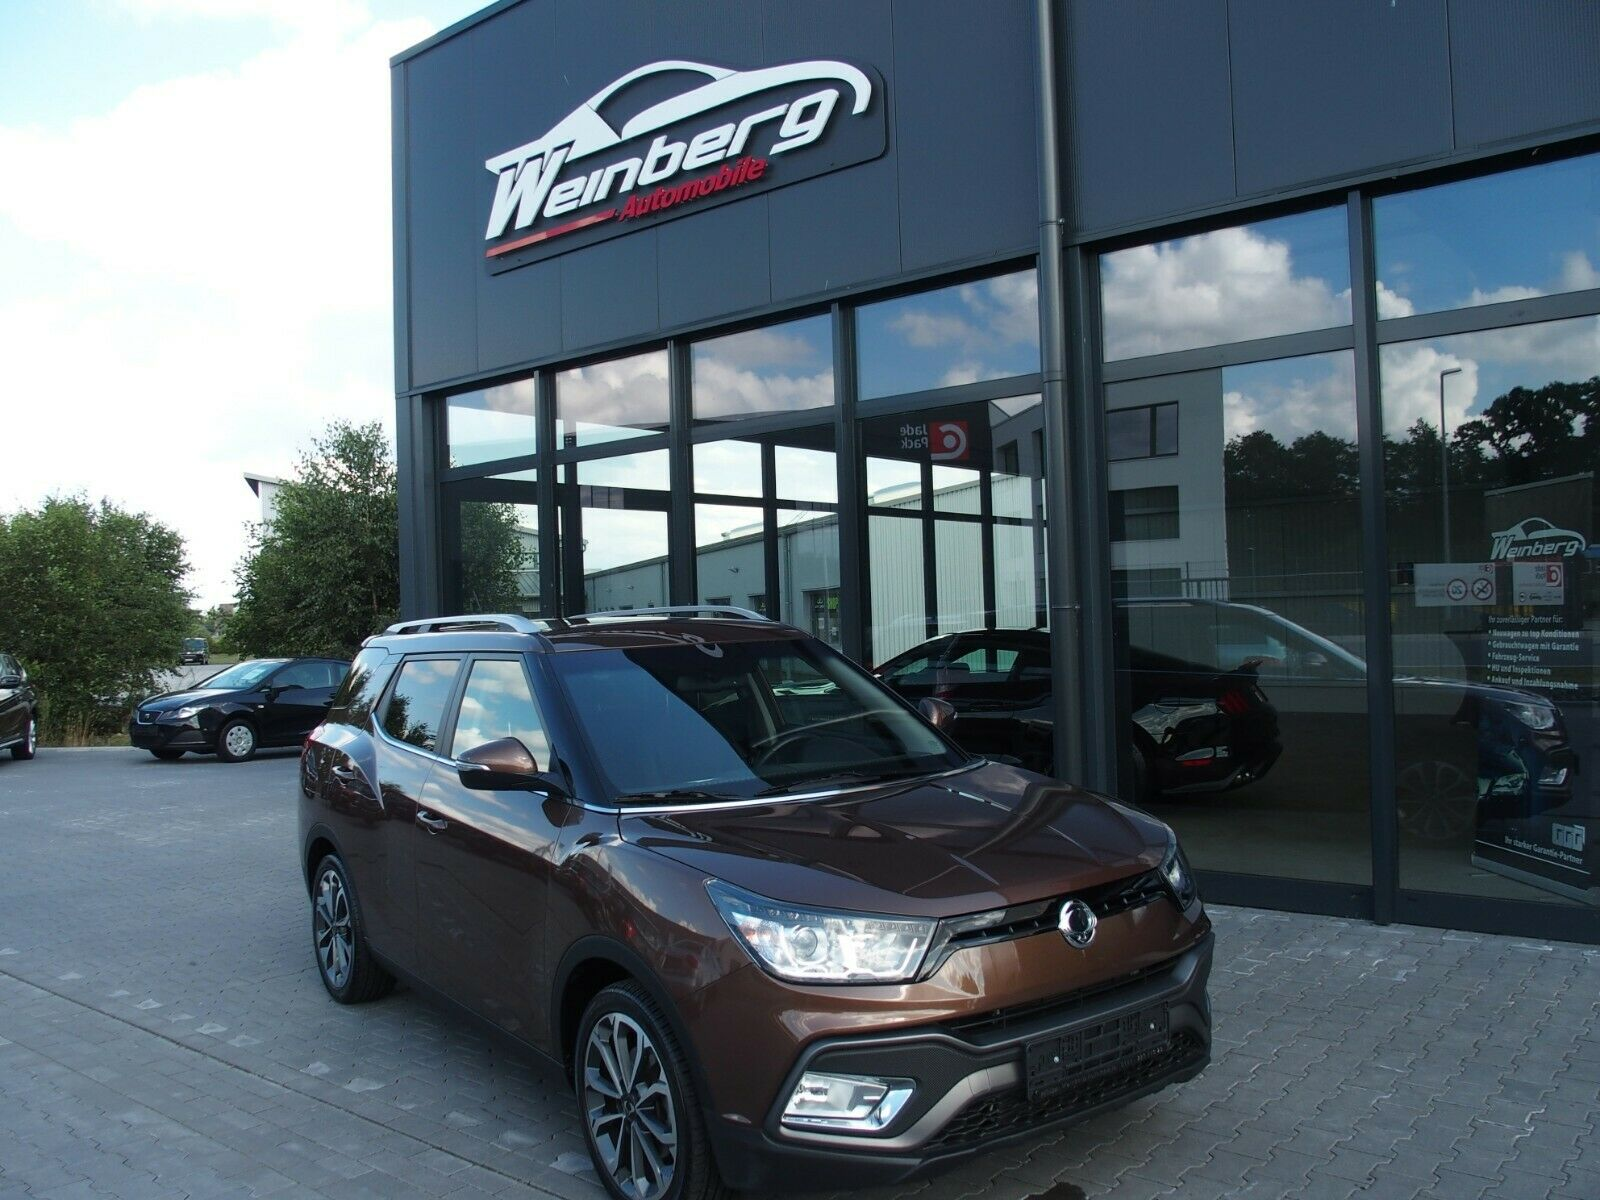 SSANGYONG XLV 1,6 2WD,AHK,Autom,1 Hand